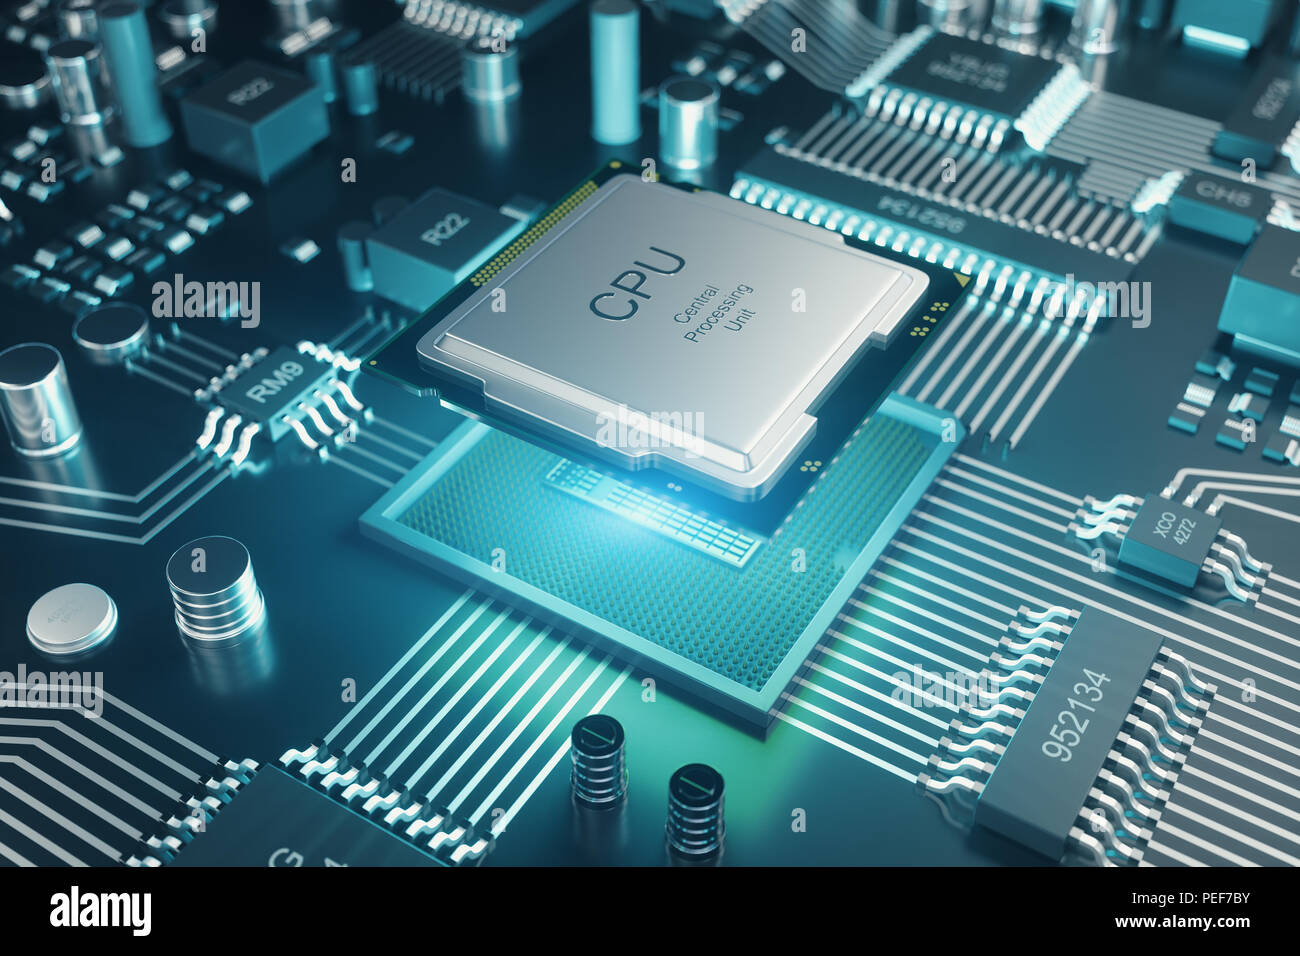 Computer Code And Circuit Board Background Illustration